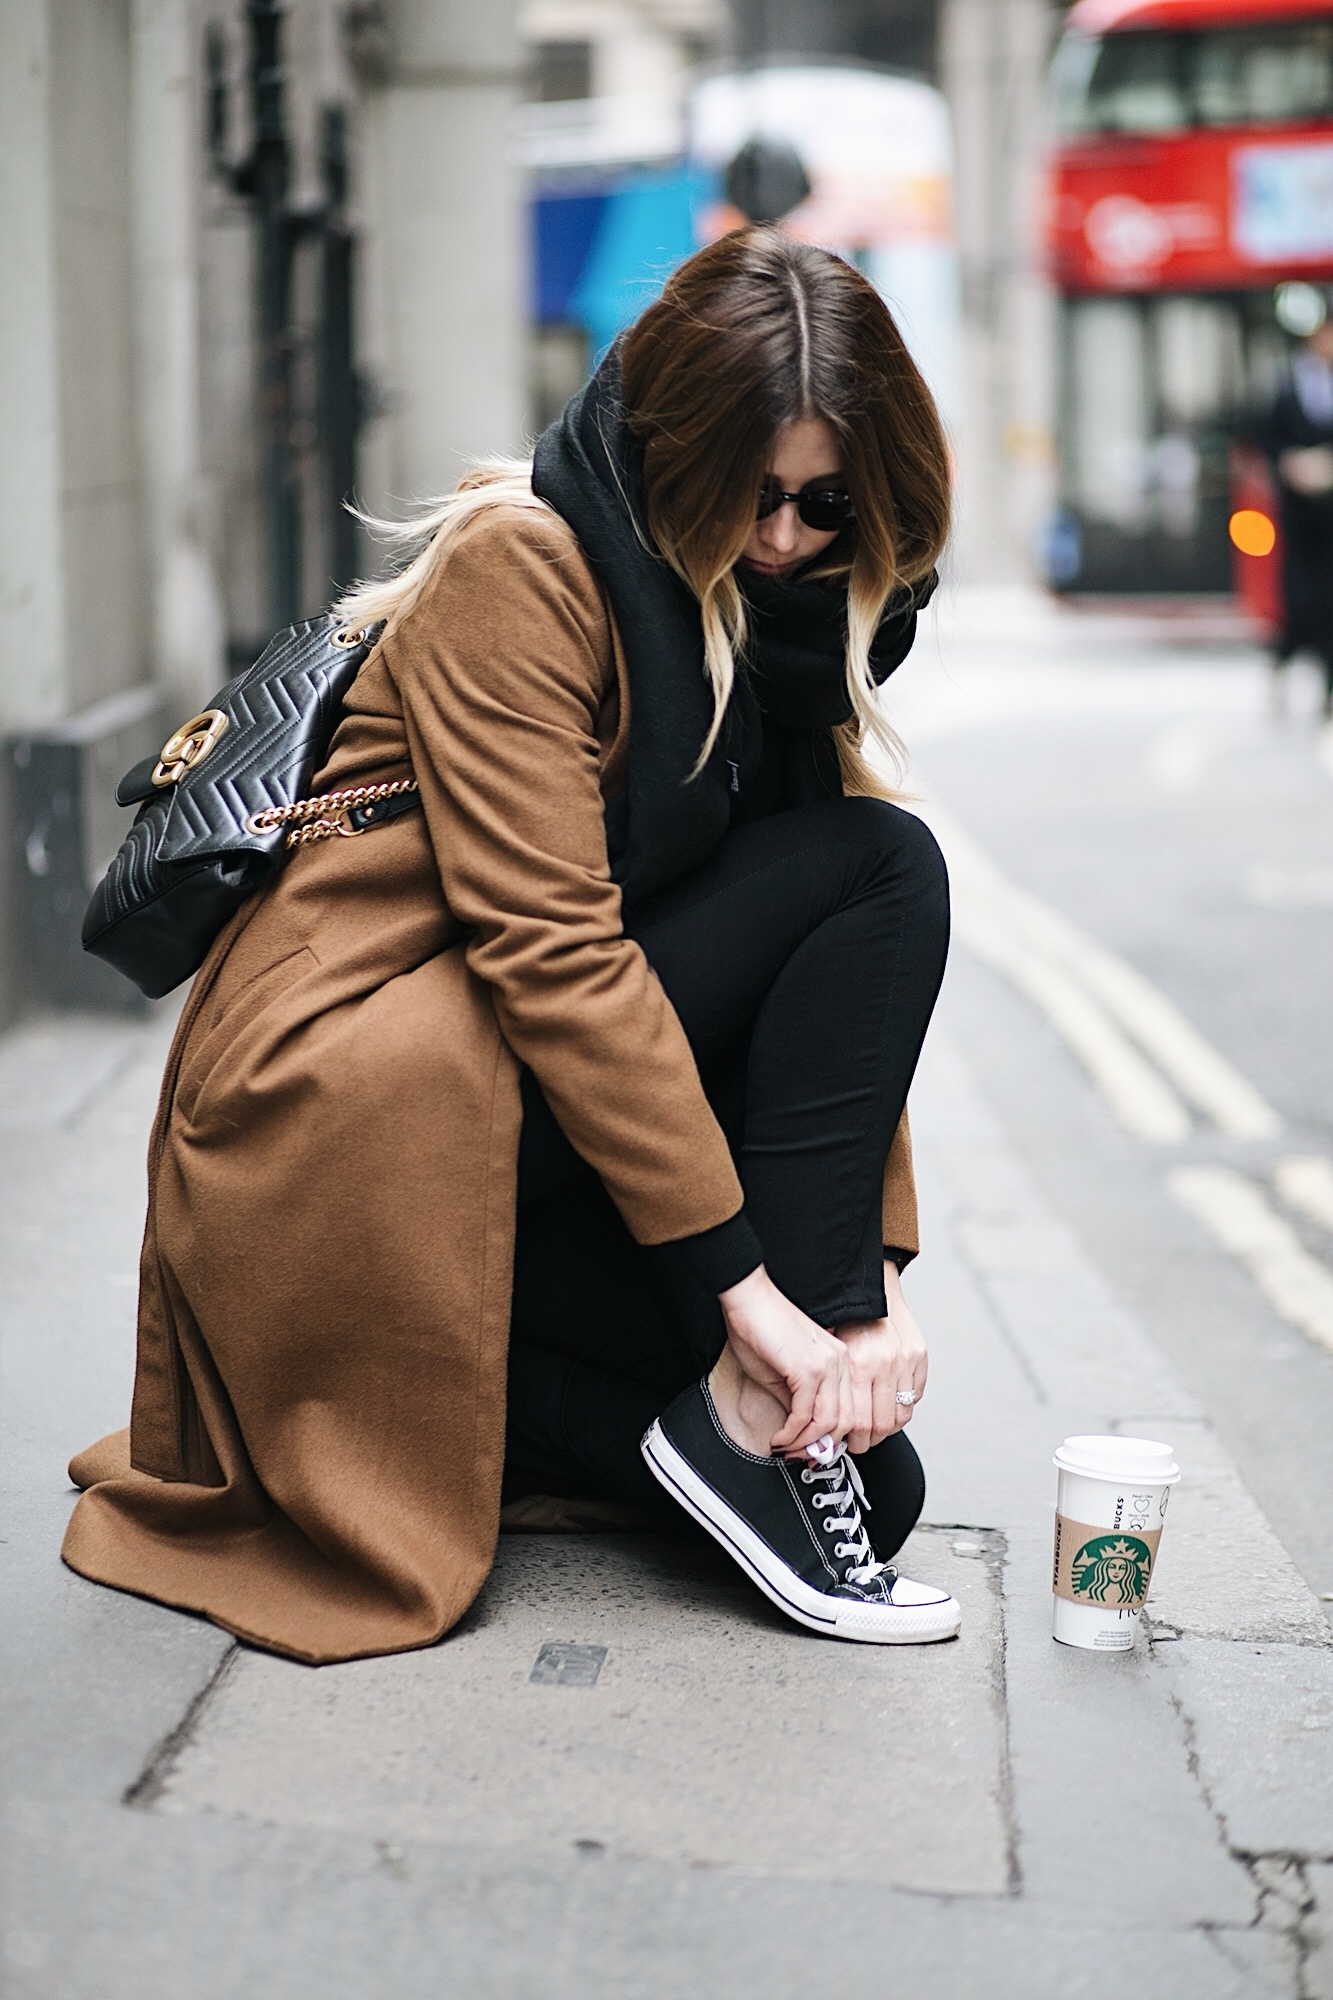 EJ STYLE - Camel coat, black skinny jeans, black scarf, black low chuck Converse, Gucci medium leather Marmont bag